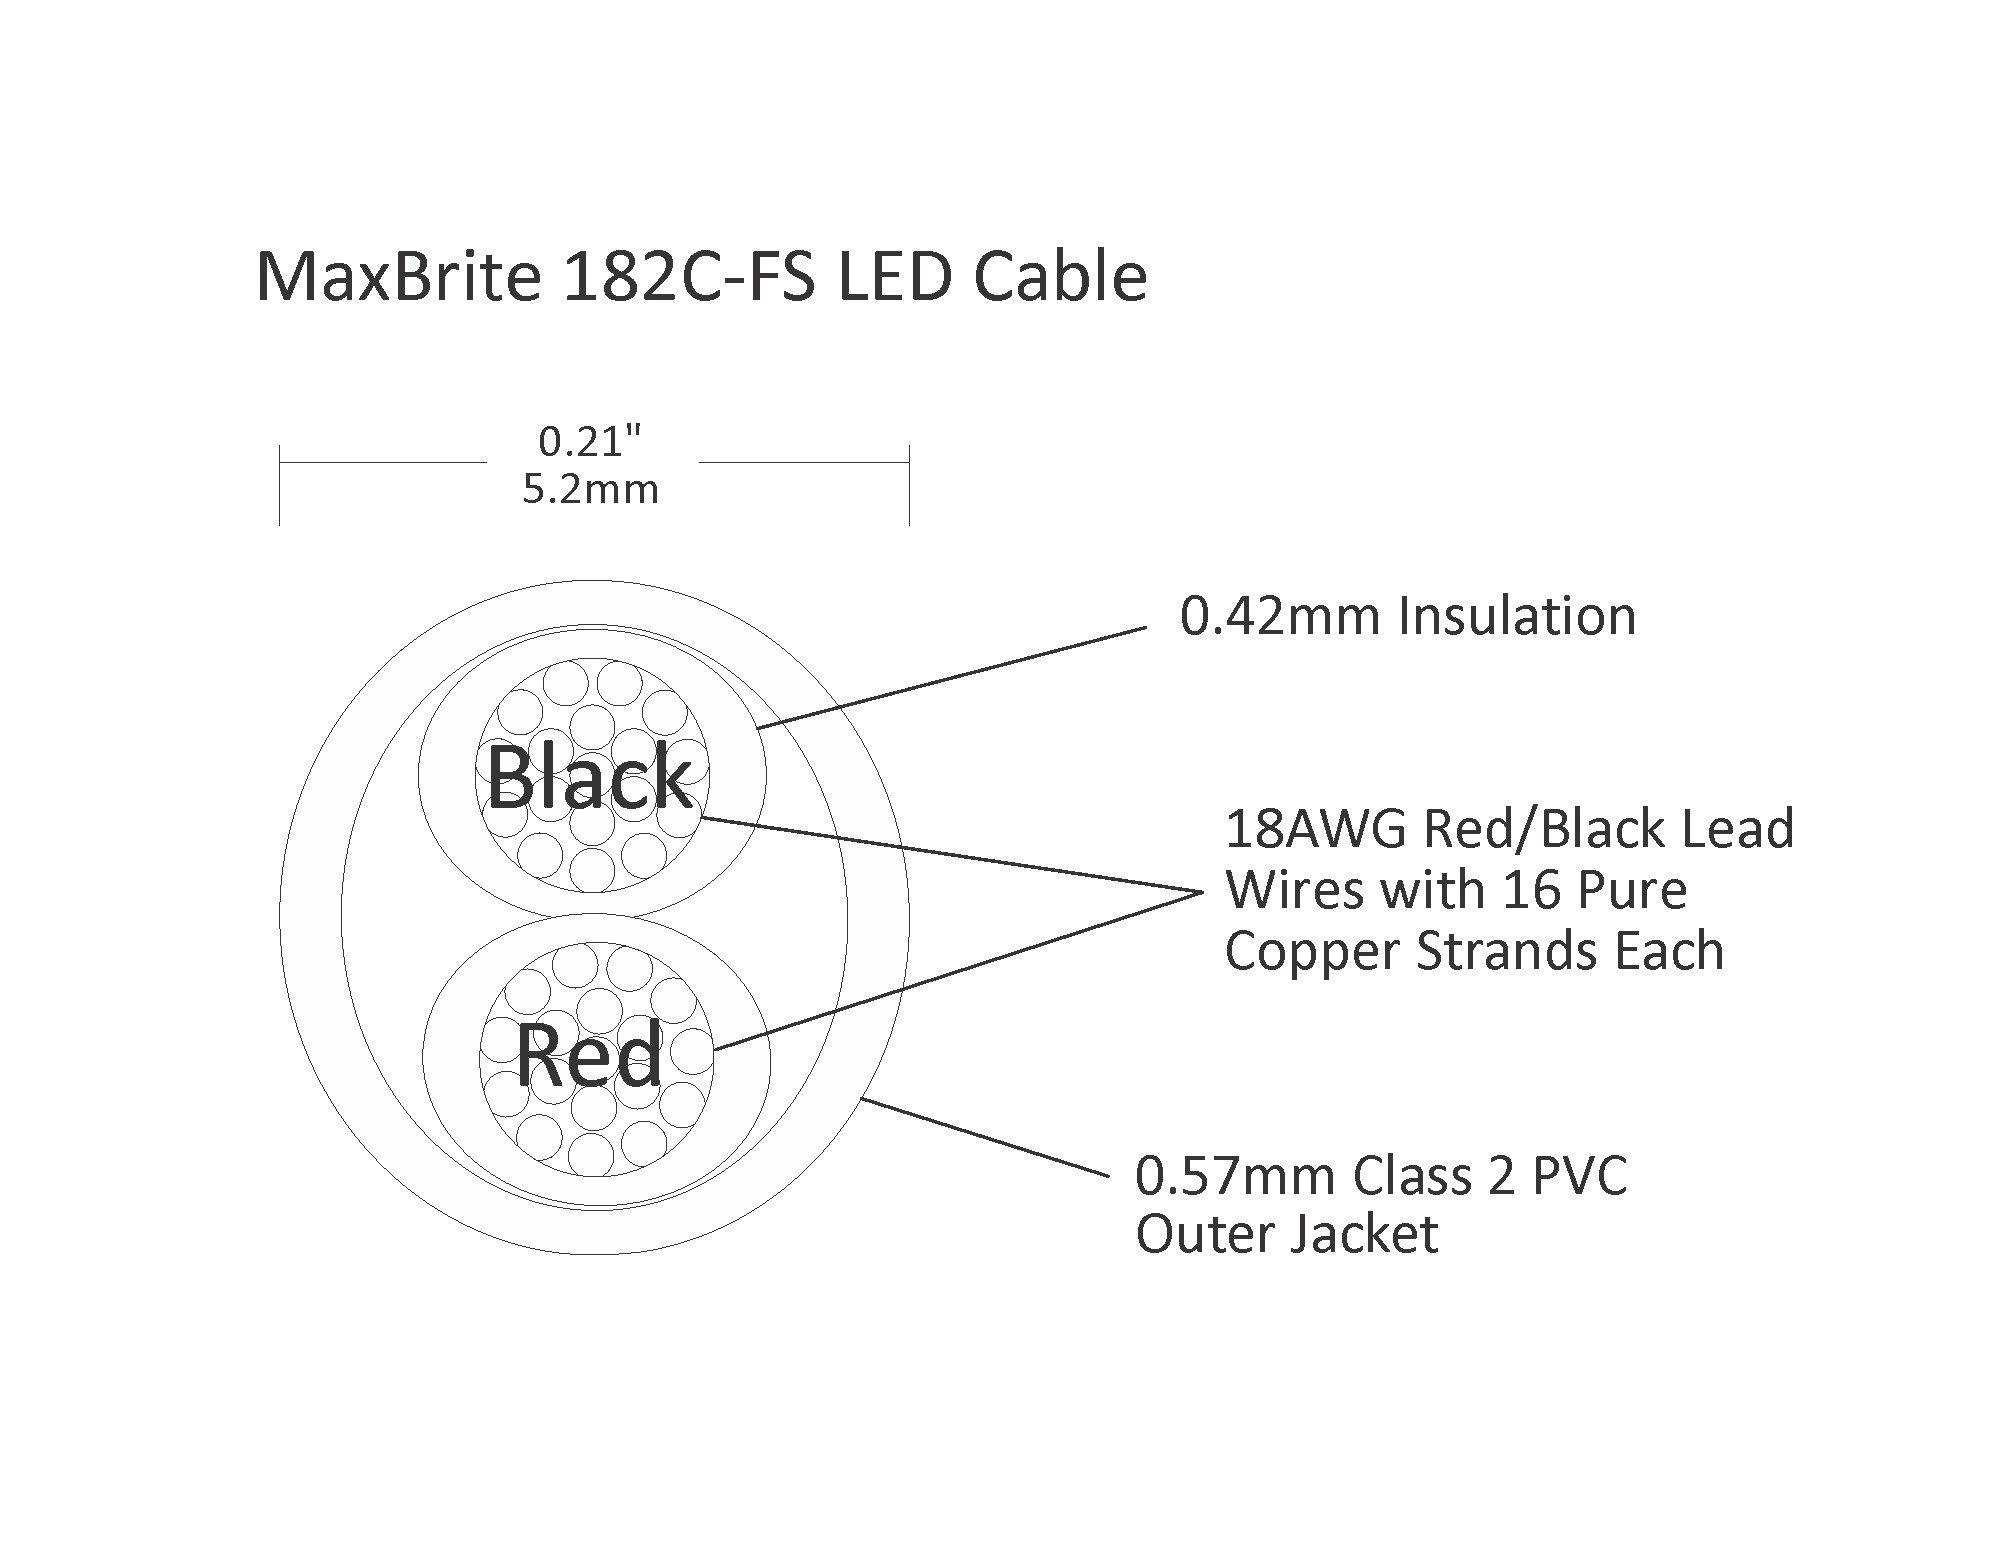 18AWG Low Voltage LED Cable 2 Conductor Jacketed In-Wall Speaker Wire UL/cUL Class 2 (500 ft reel) by MaxBrite (Image #3)